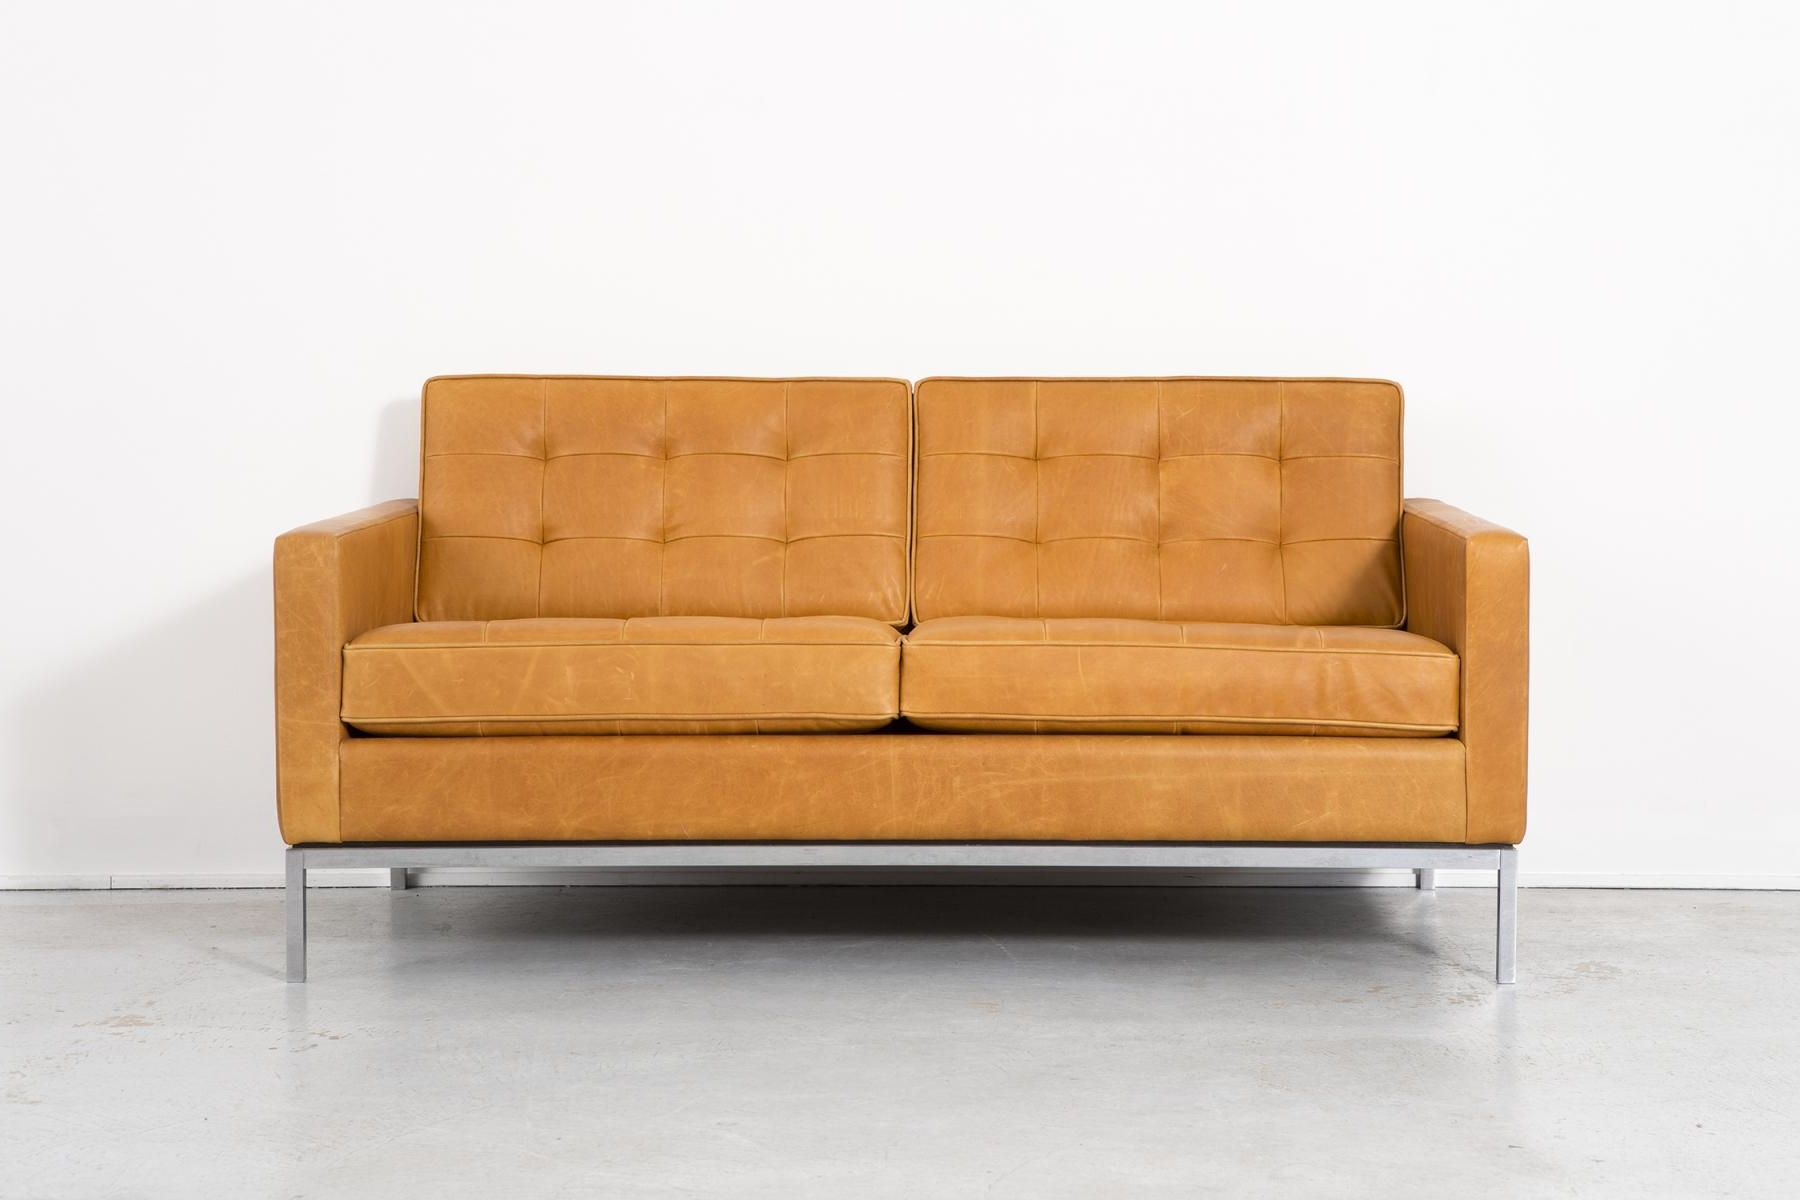 Leather Sofaflorence Knoll Bassett For Knoll, 1970s For Sale In Current Florence Knoll Leather Sofas (View 10 of 20)